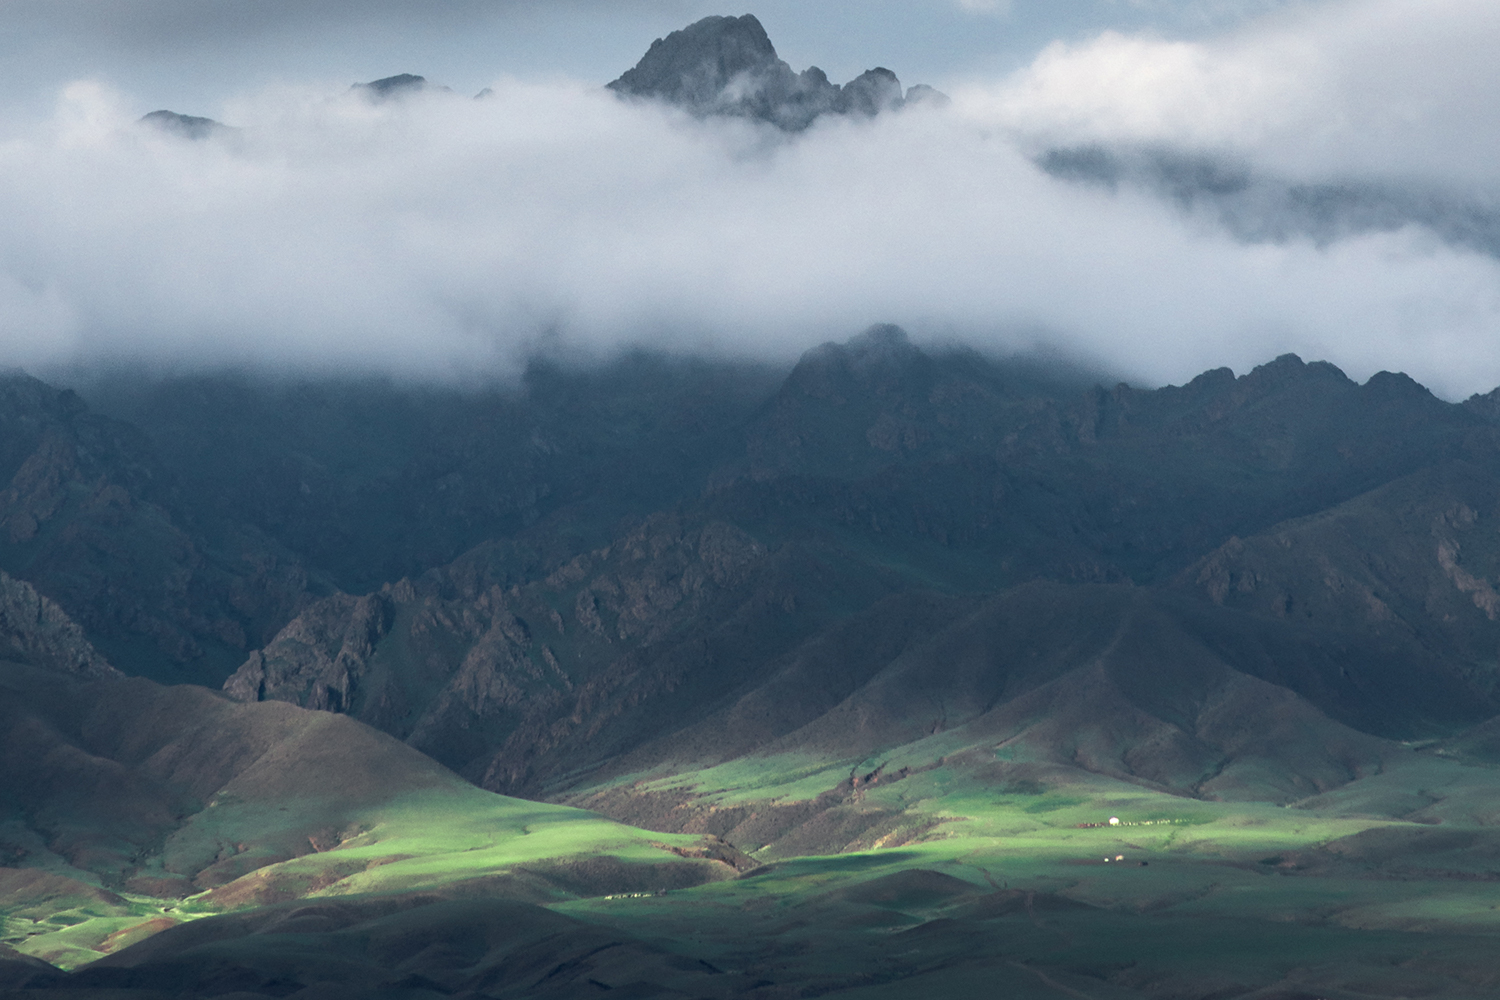 mountainous landscape on a cloudy day